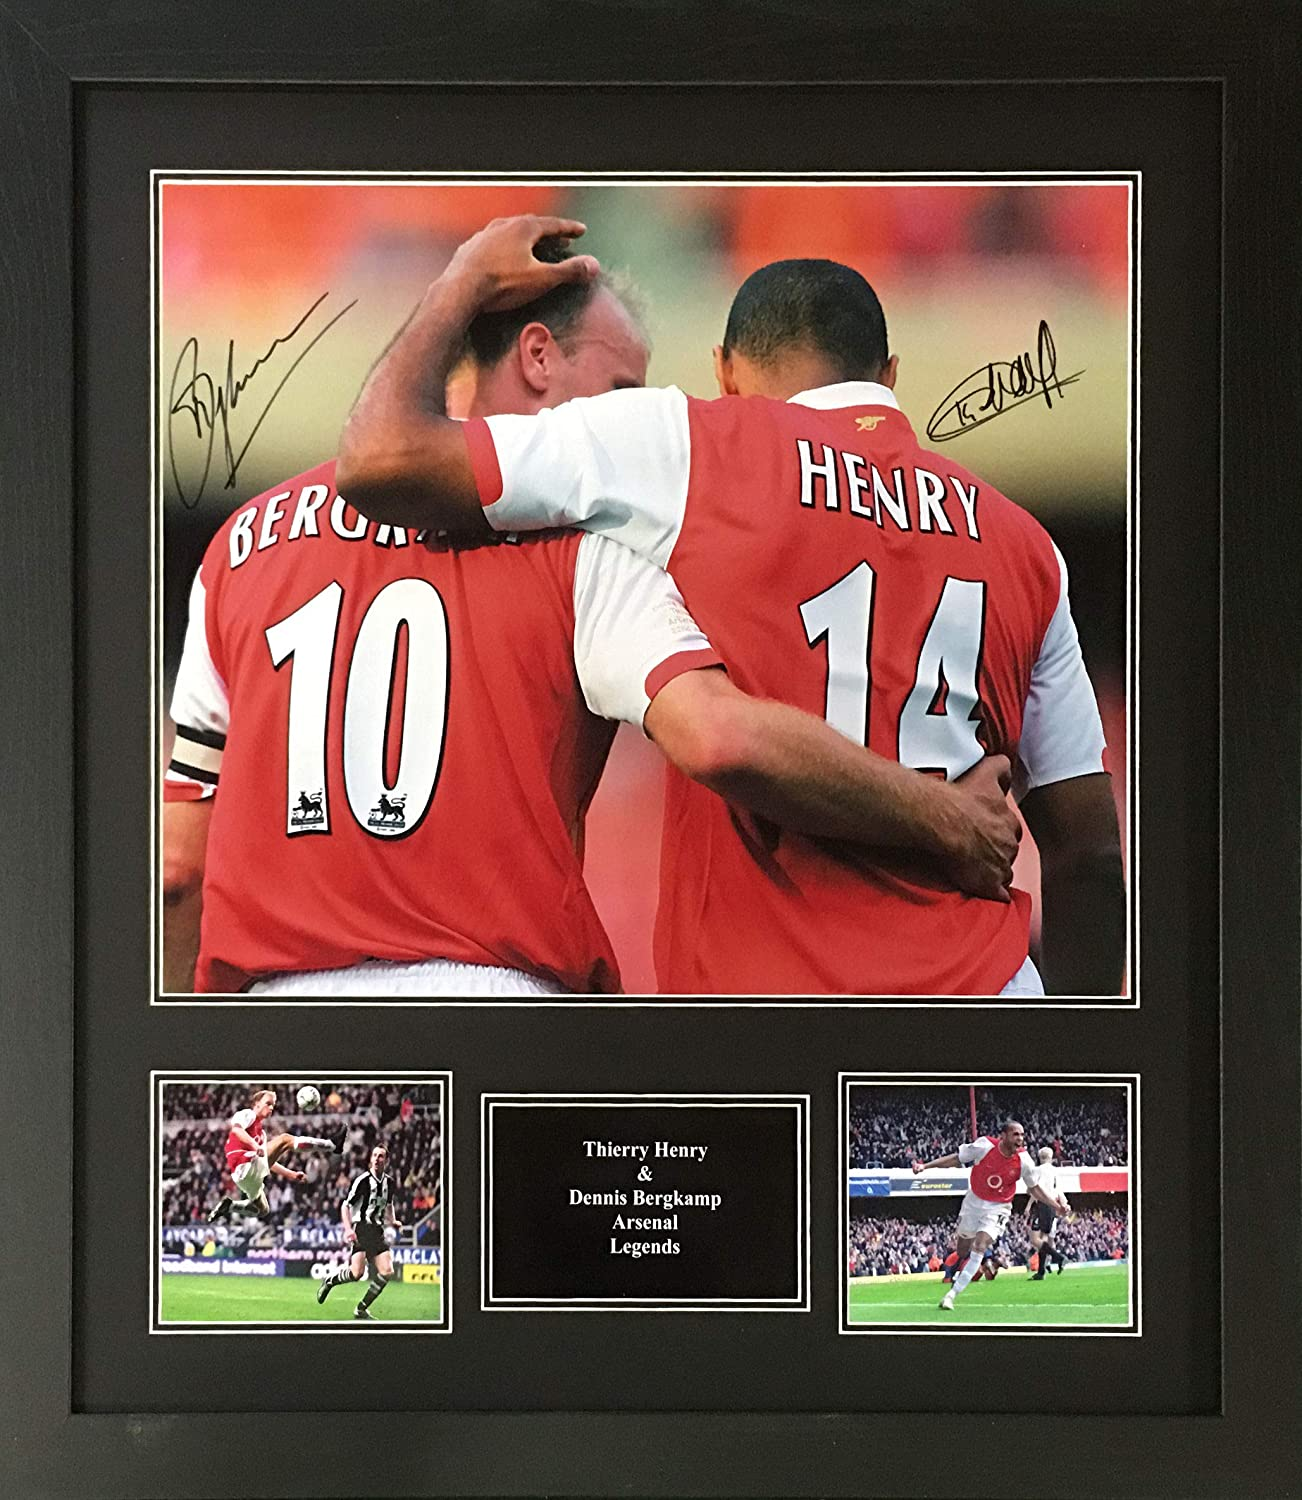 cc678a1cea9 Dennis Bergkamp and Thierry Henry signed and Framed Arsenal 16x20 inch  photo with COA and proof: Amazon.co.uk: Sports & Outdoors